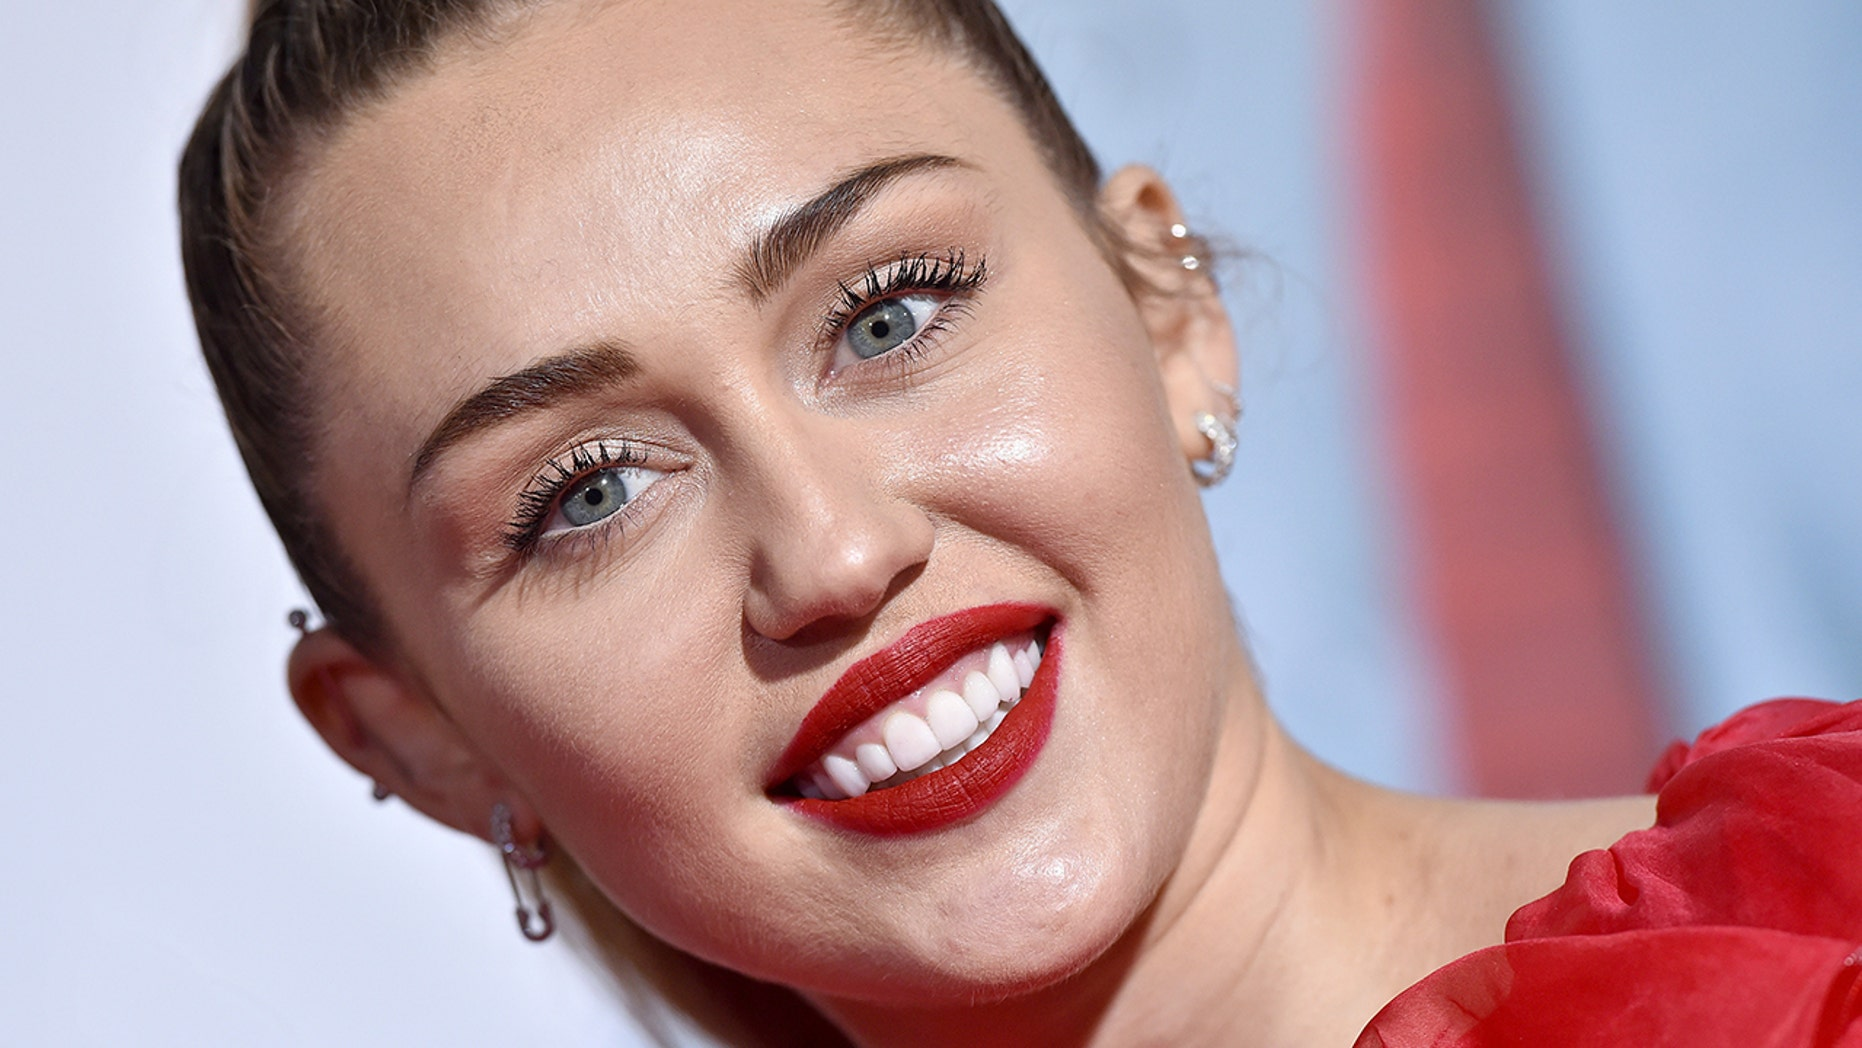 Miley Cyrus Gave Liam Hemsworth an Insanely Raunchy Valentine